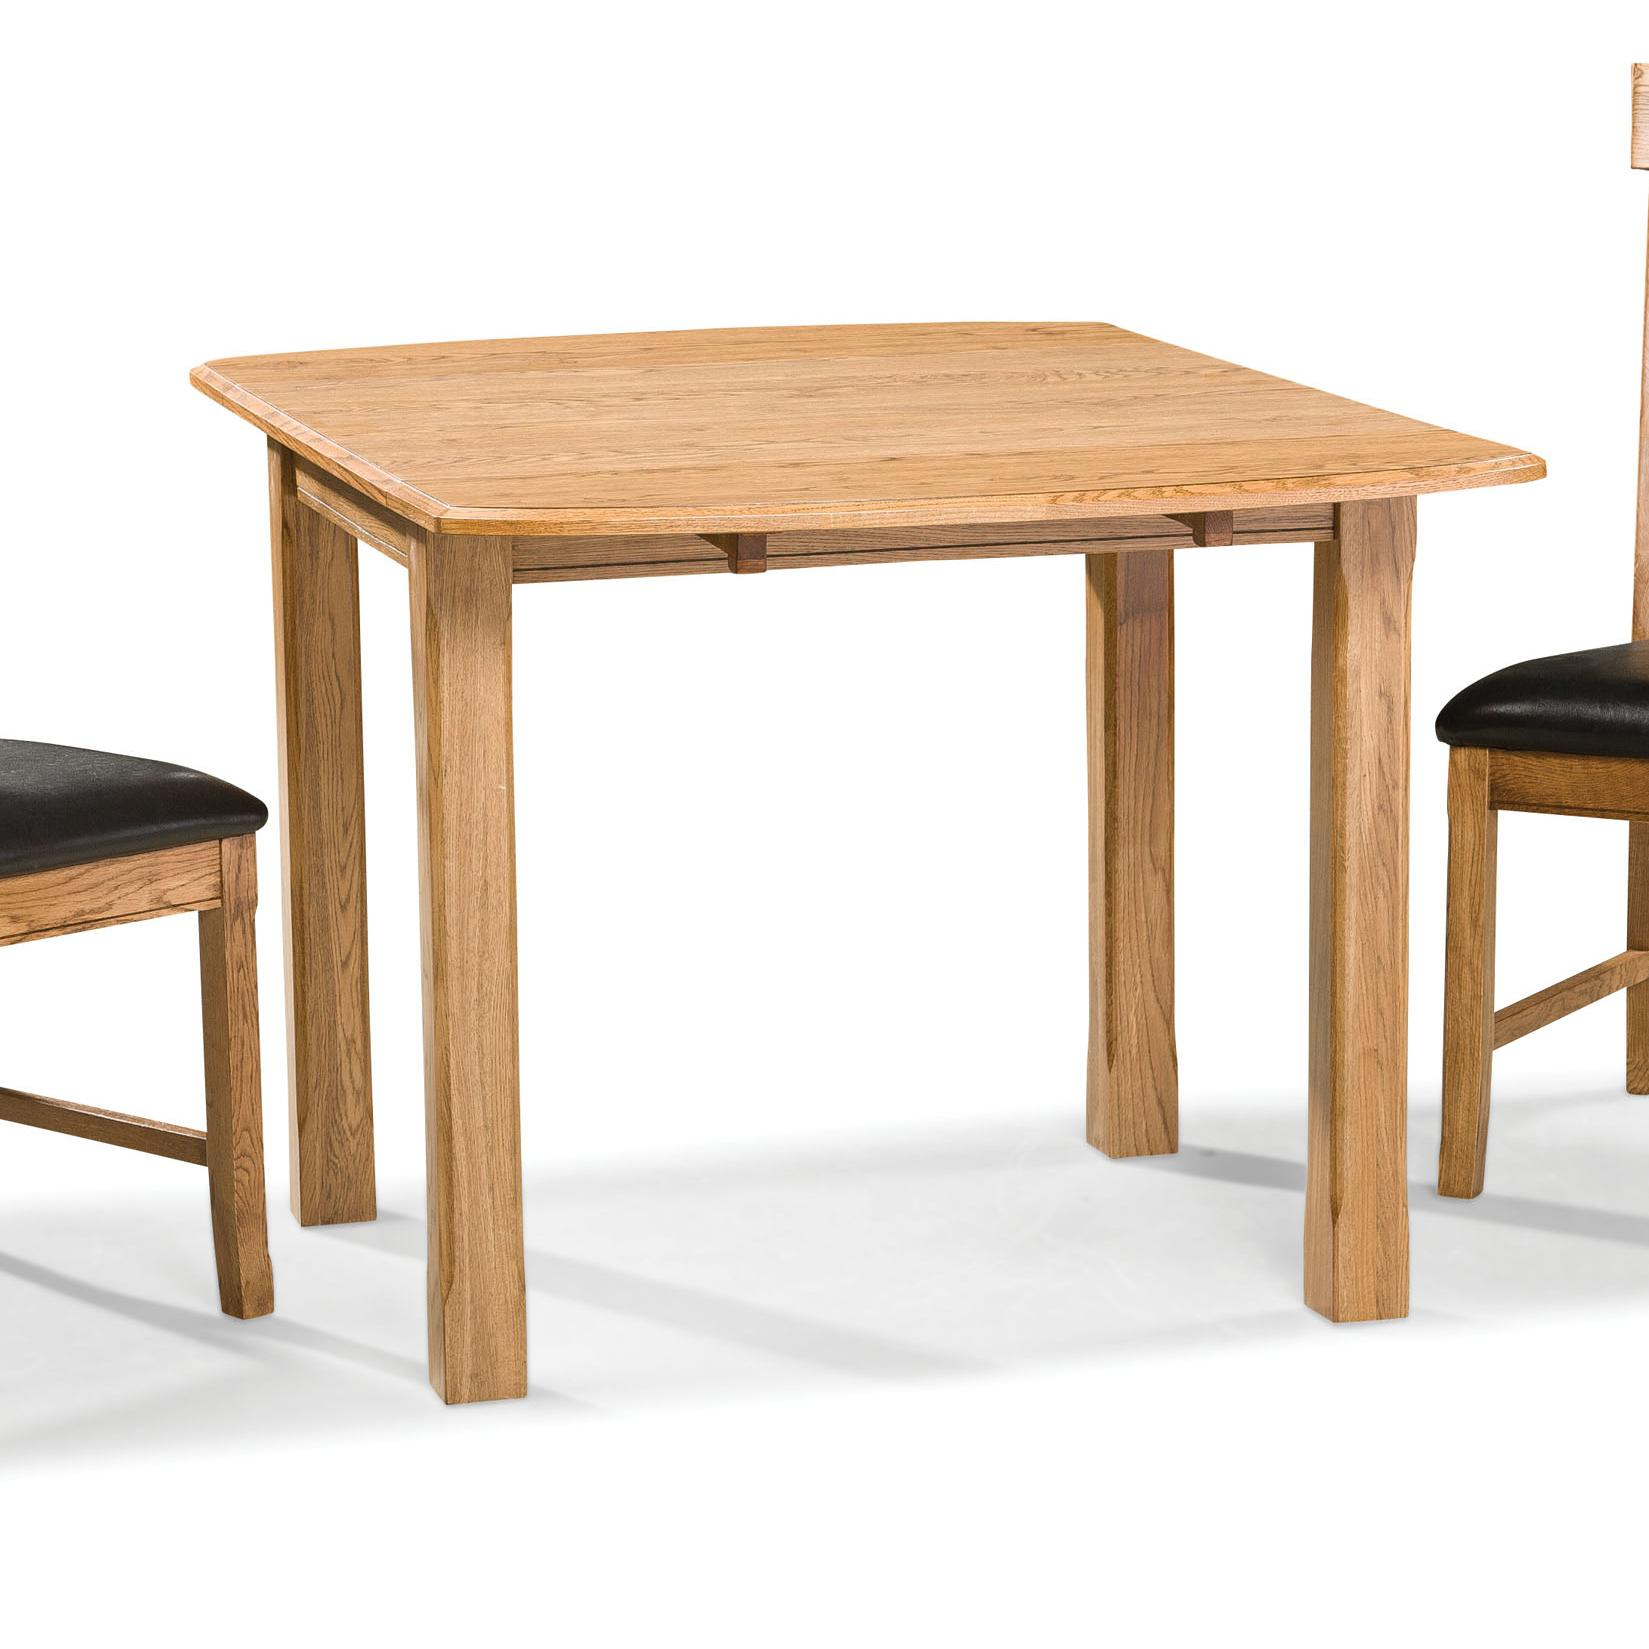 Intercon Family Dining Drop Leaf Table - Item Number: FD-TA-L3654D-CNT-C